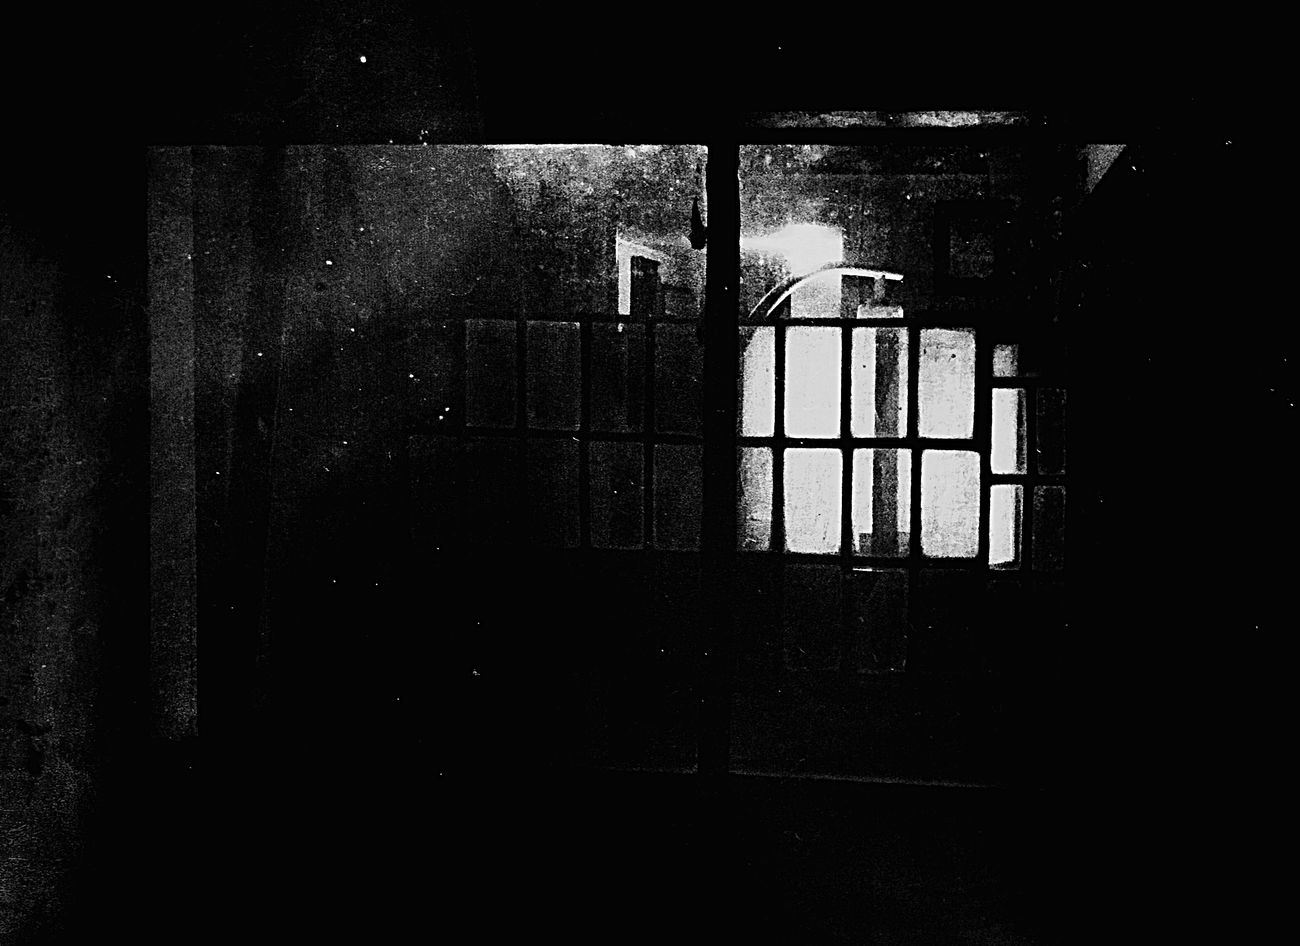 Architecture Built Structure No People Window Indoors  Day Burtonjlomax Blackieapp Blackandwhite Monochrome Surrealism Photography Surreal Shadow Doorways Dramatic Sky Ominous Clouds